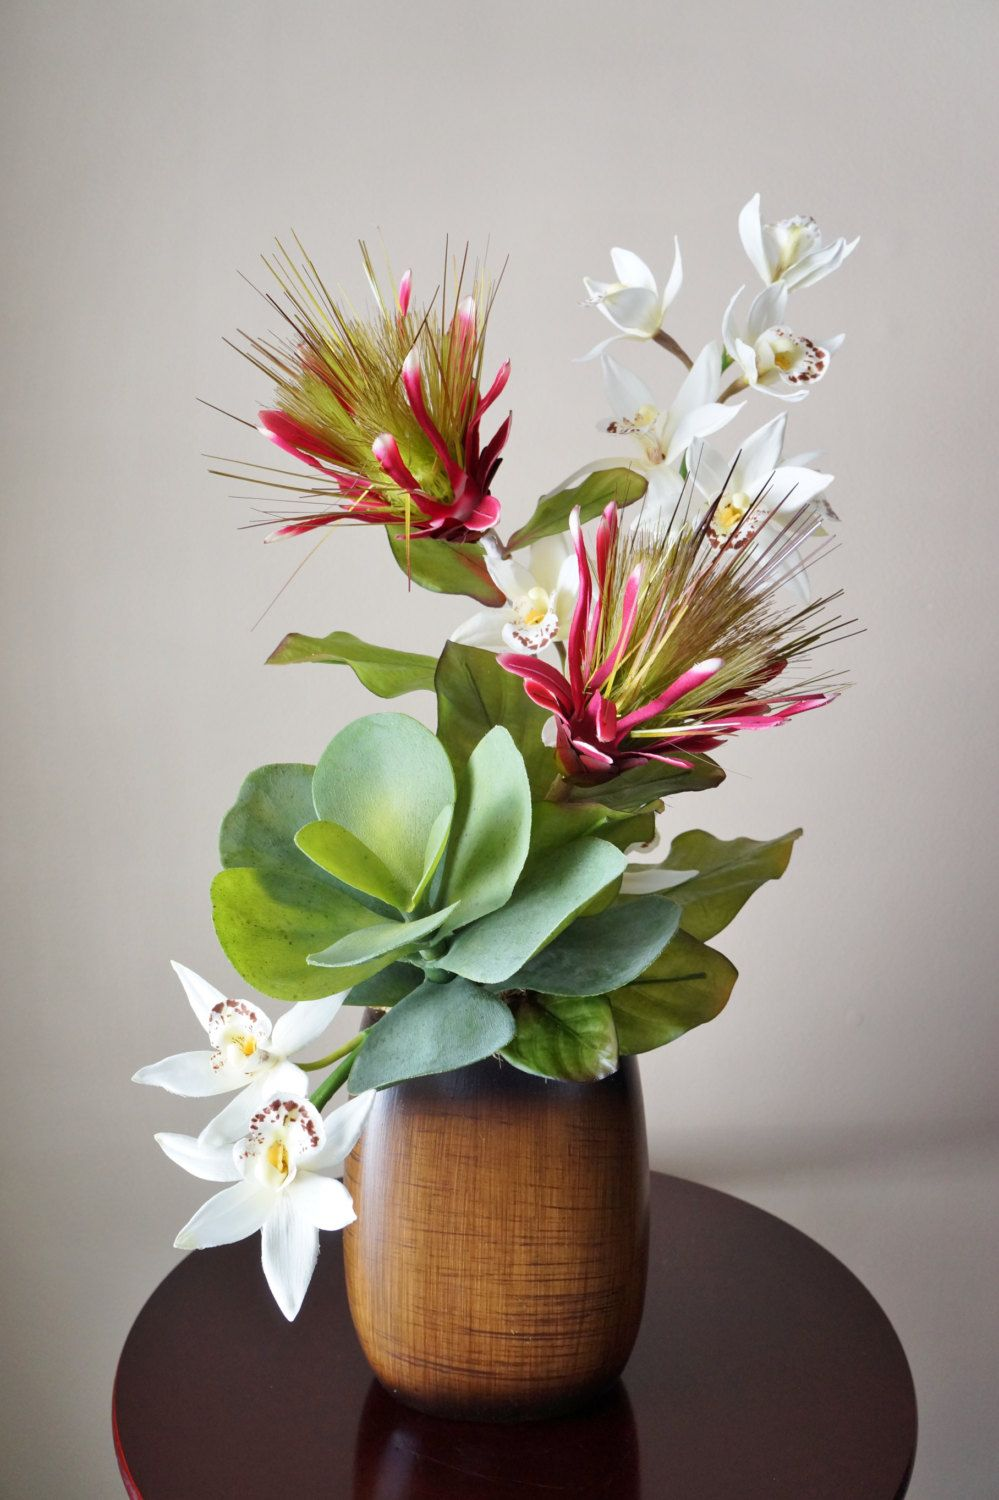 Silk flower arrangement tropical flower arrangement with orchids silk flower arrangement tropical flower arrangement with orchids and succulents set in faux wood ceramic vase home decor by brandybydesignltd on etsy mightylinksfo Gallery